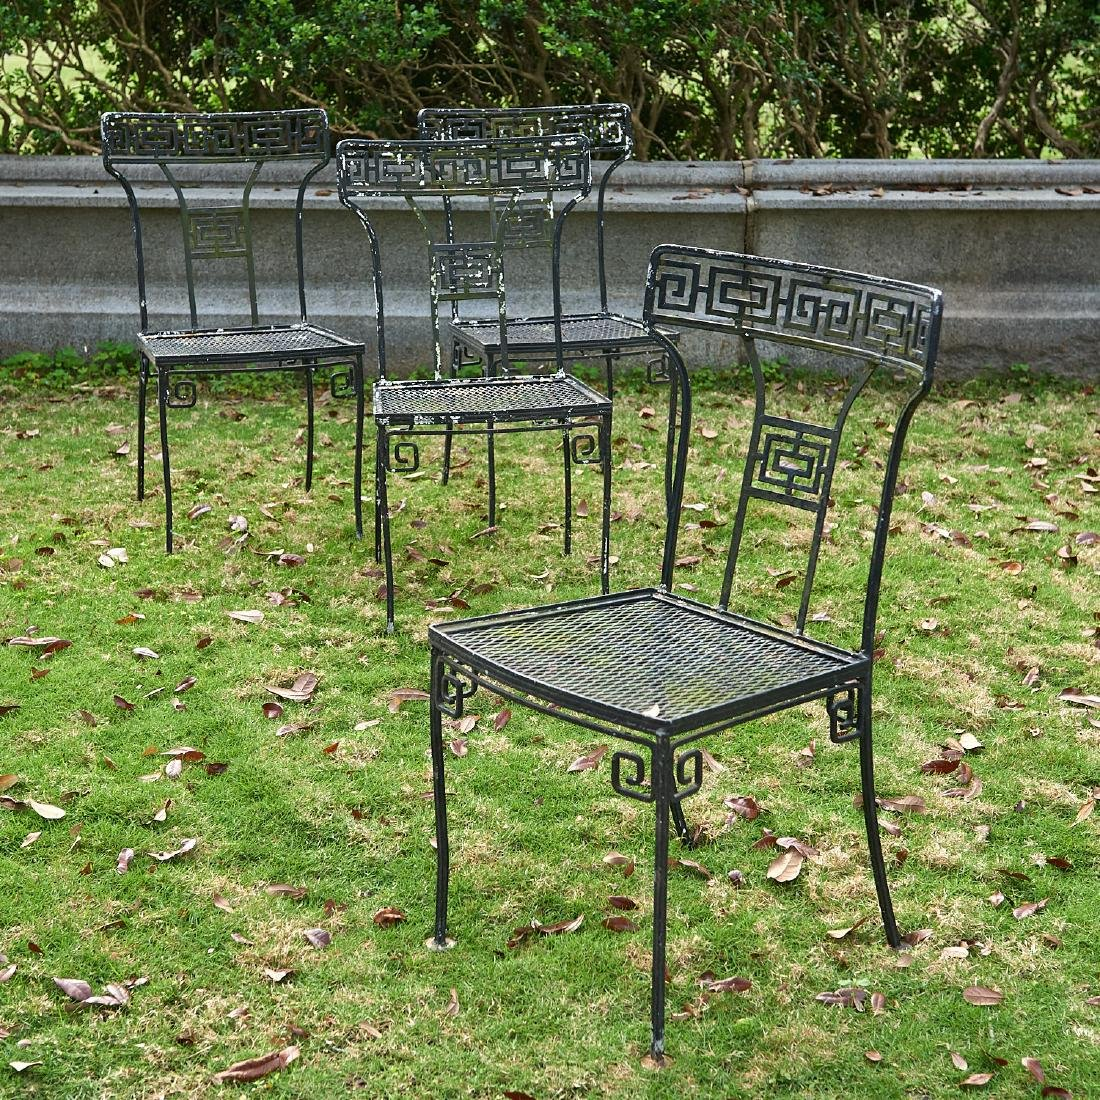 Set (4) Neo-Classical style wrought iron chairs